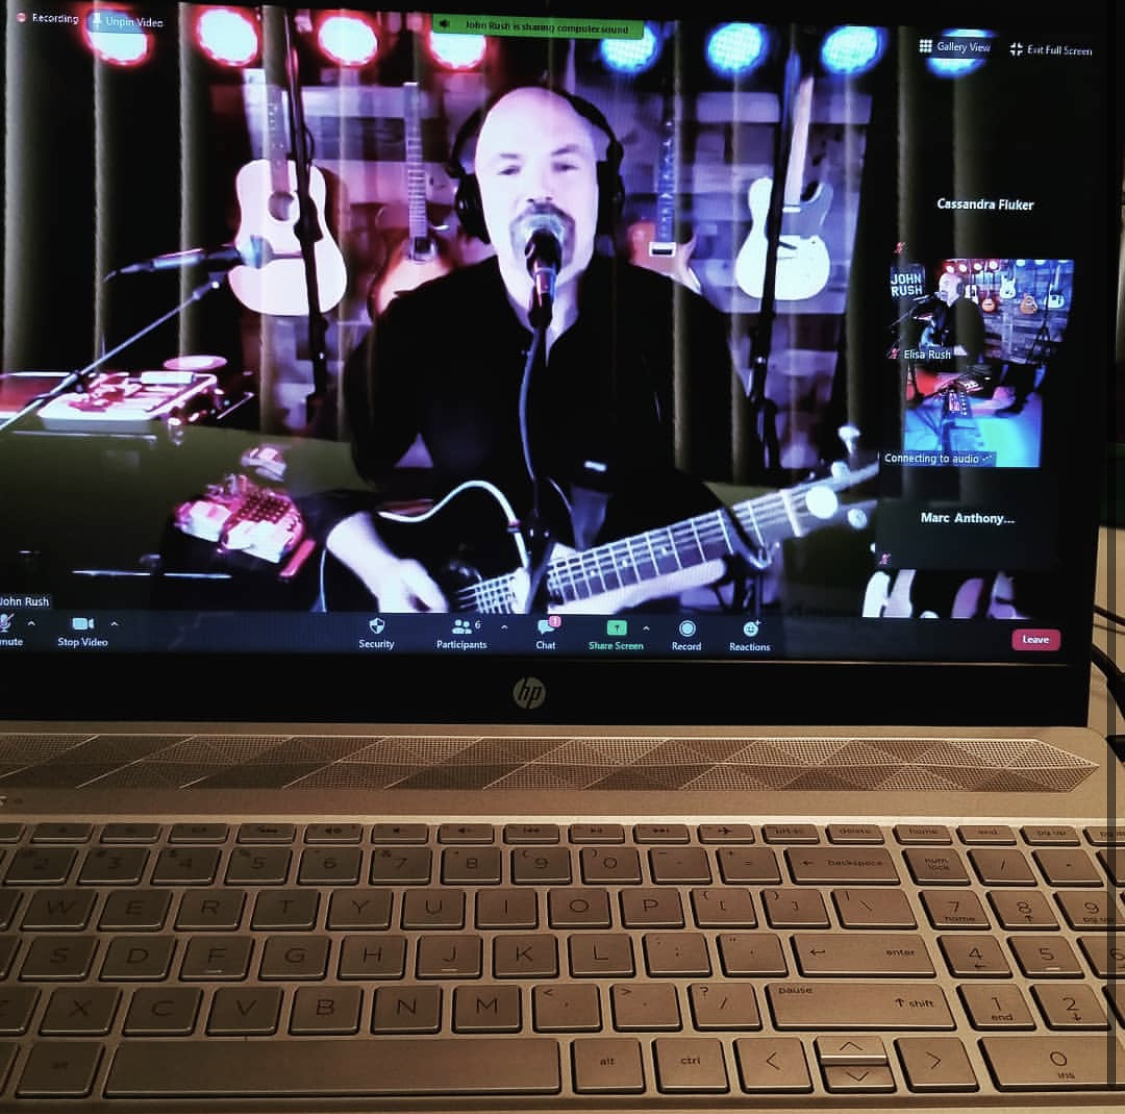 John Rush, the Human iPod, performing requested songs during a live virtual show for HFC's  Welcome Back Days